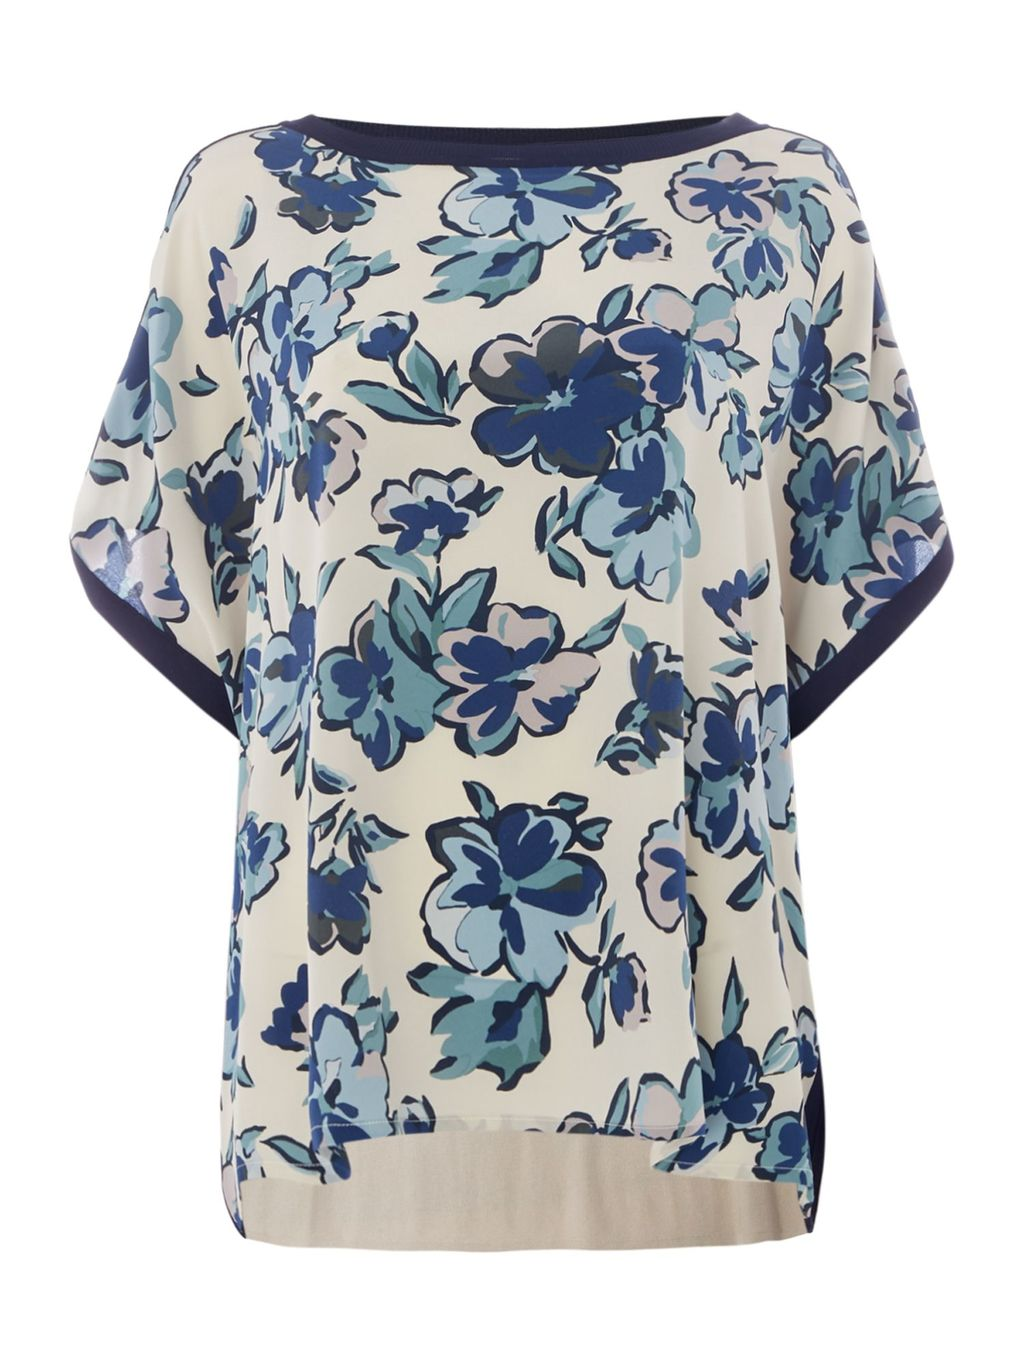 Fresis Long Sleeve Floral Print Top, Ivory - neckline: slash/boat neckline; sleeve style: dolman/batwing; style: t-shirt; predominant colour: ivory/cream; secondary colour: navy; occasions: casual, creative work; length: standard; fibres: cotton - stretch; fit: loose; sleeve length: half sleeve; pattern type: fabric; pattern: florals; texture group: jersey - stretchy/drapey; pattern size: big & busy (top); multicoloured: multicoloured; season: s/s 2016; wardrobe: highlight